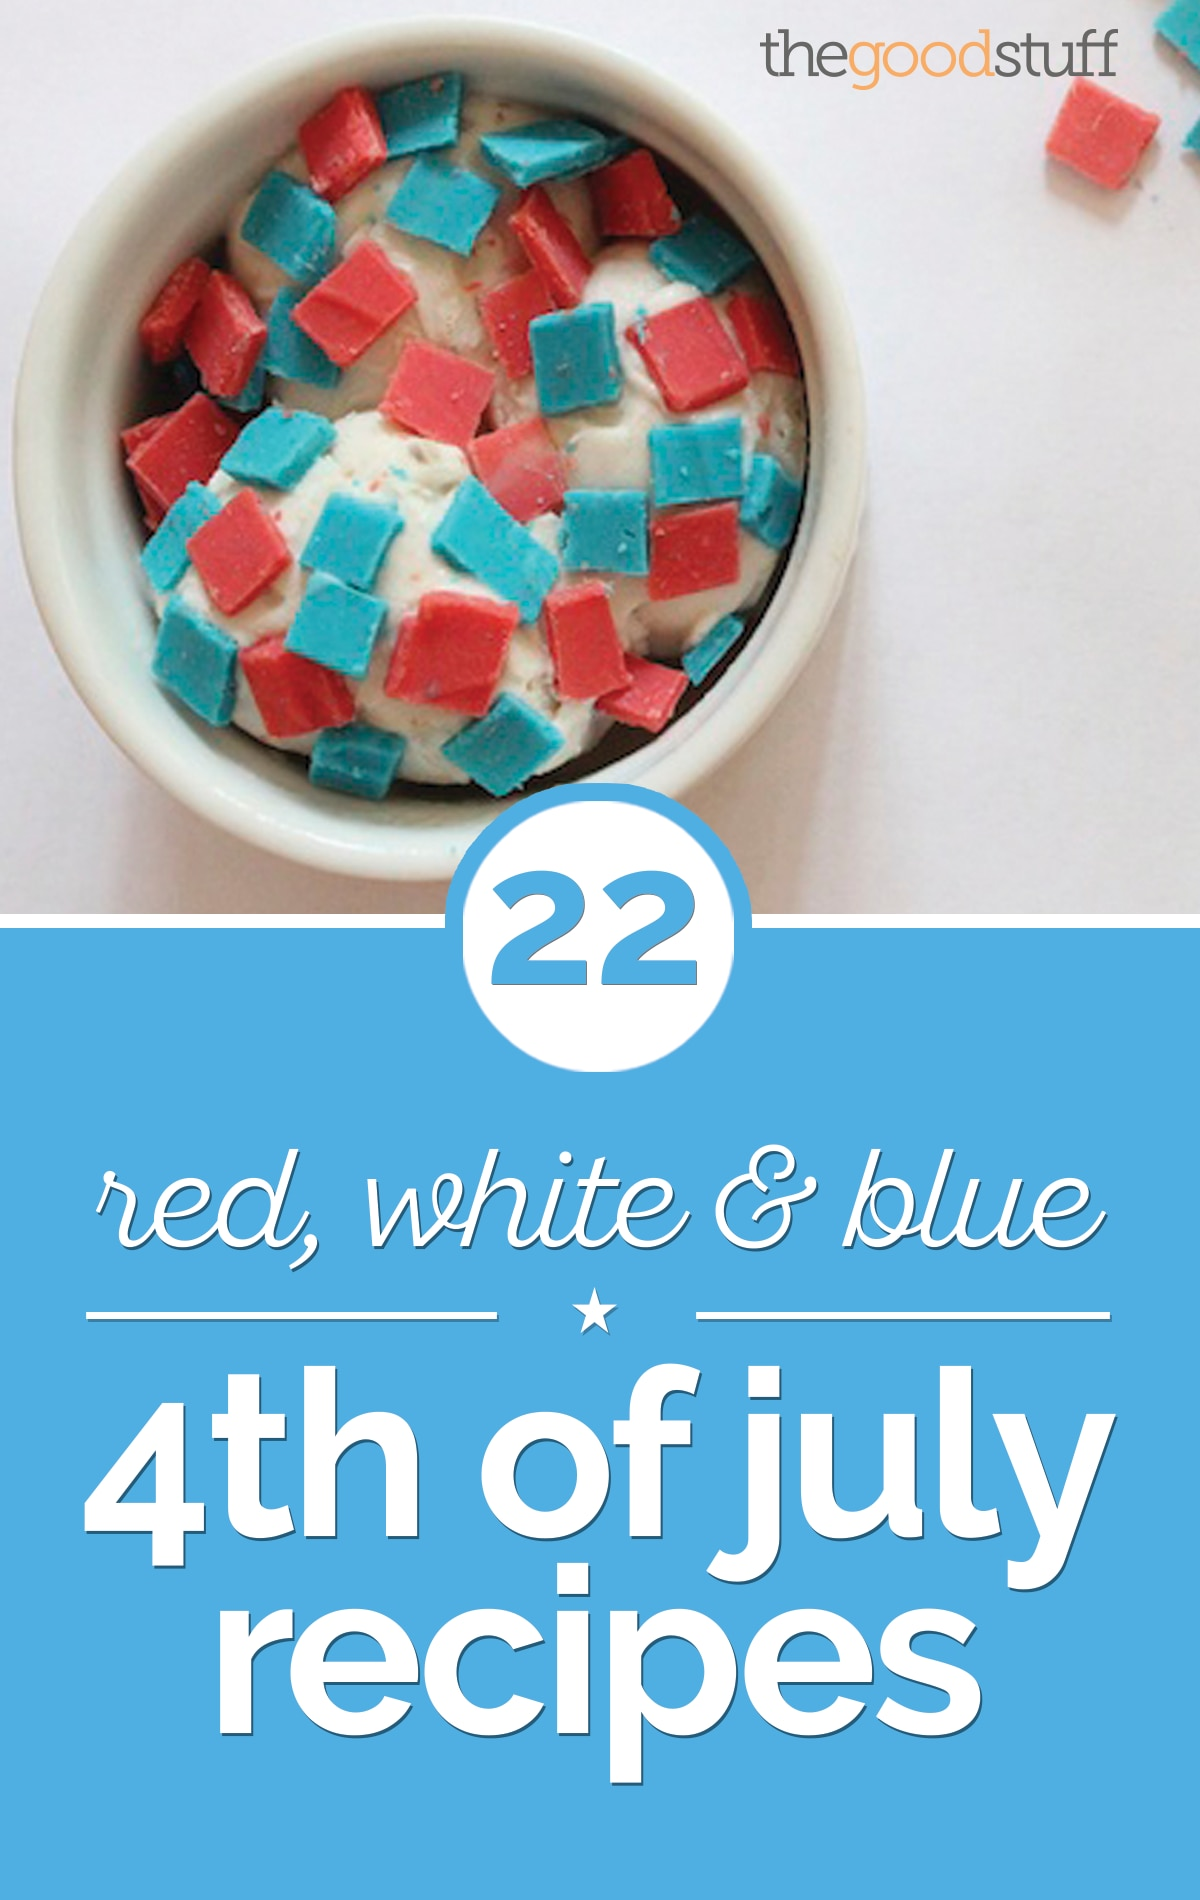 22 Red, White & Blue 4th of July Recipes | thegoodstuff